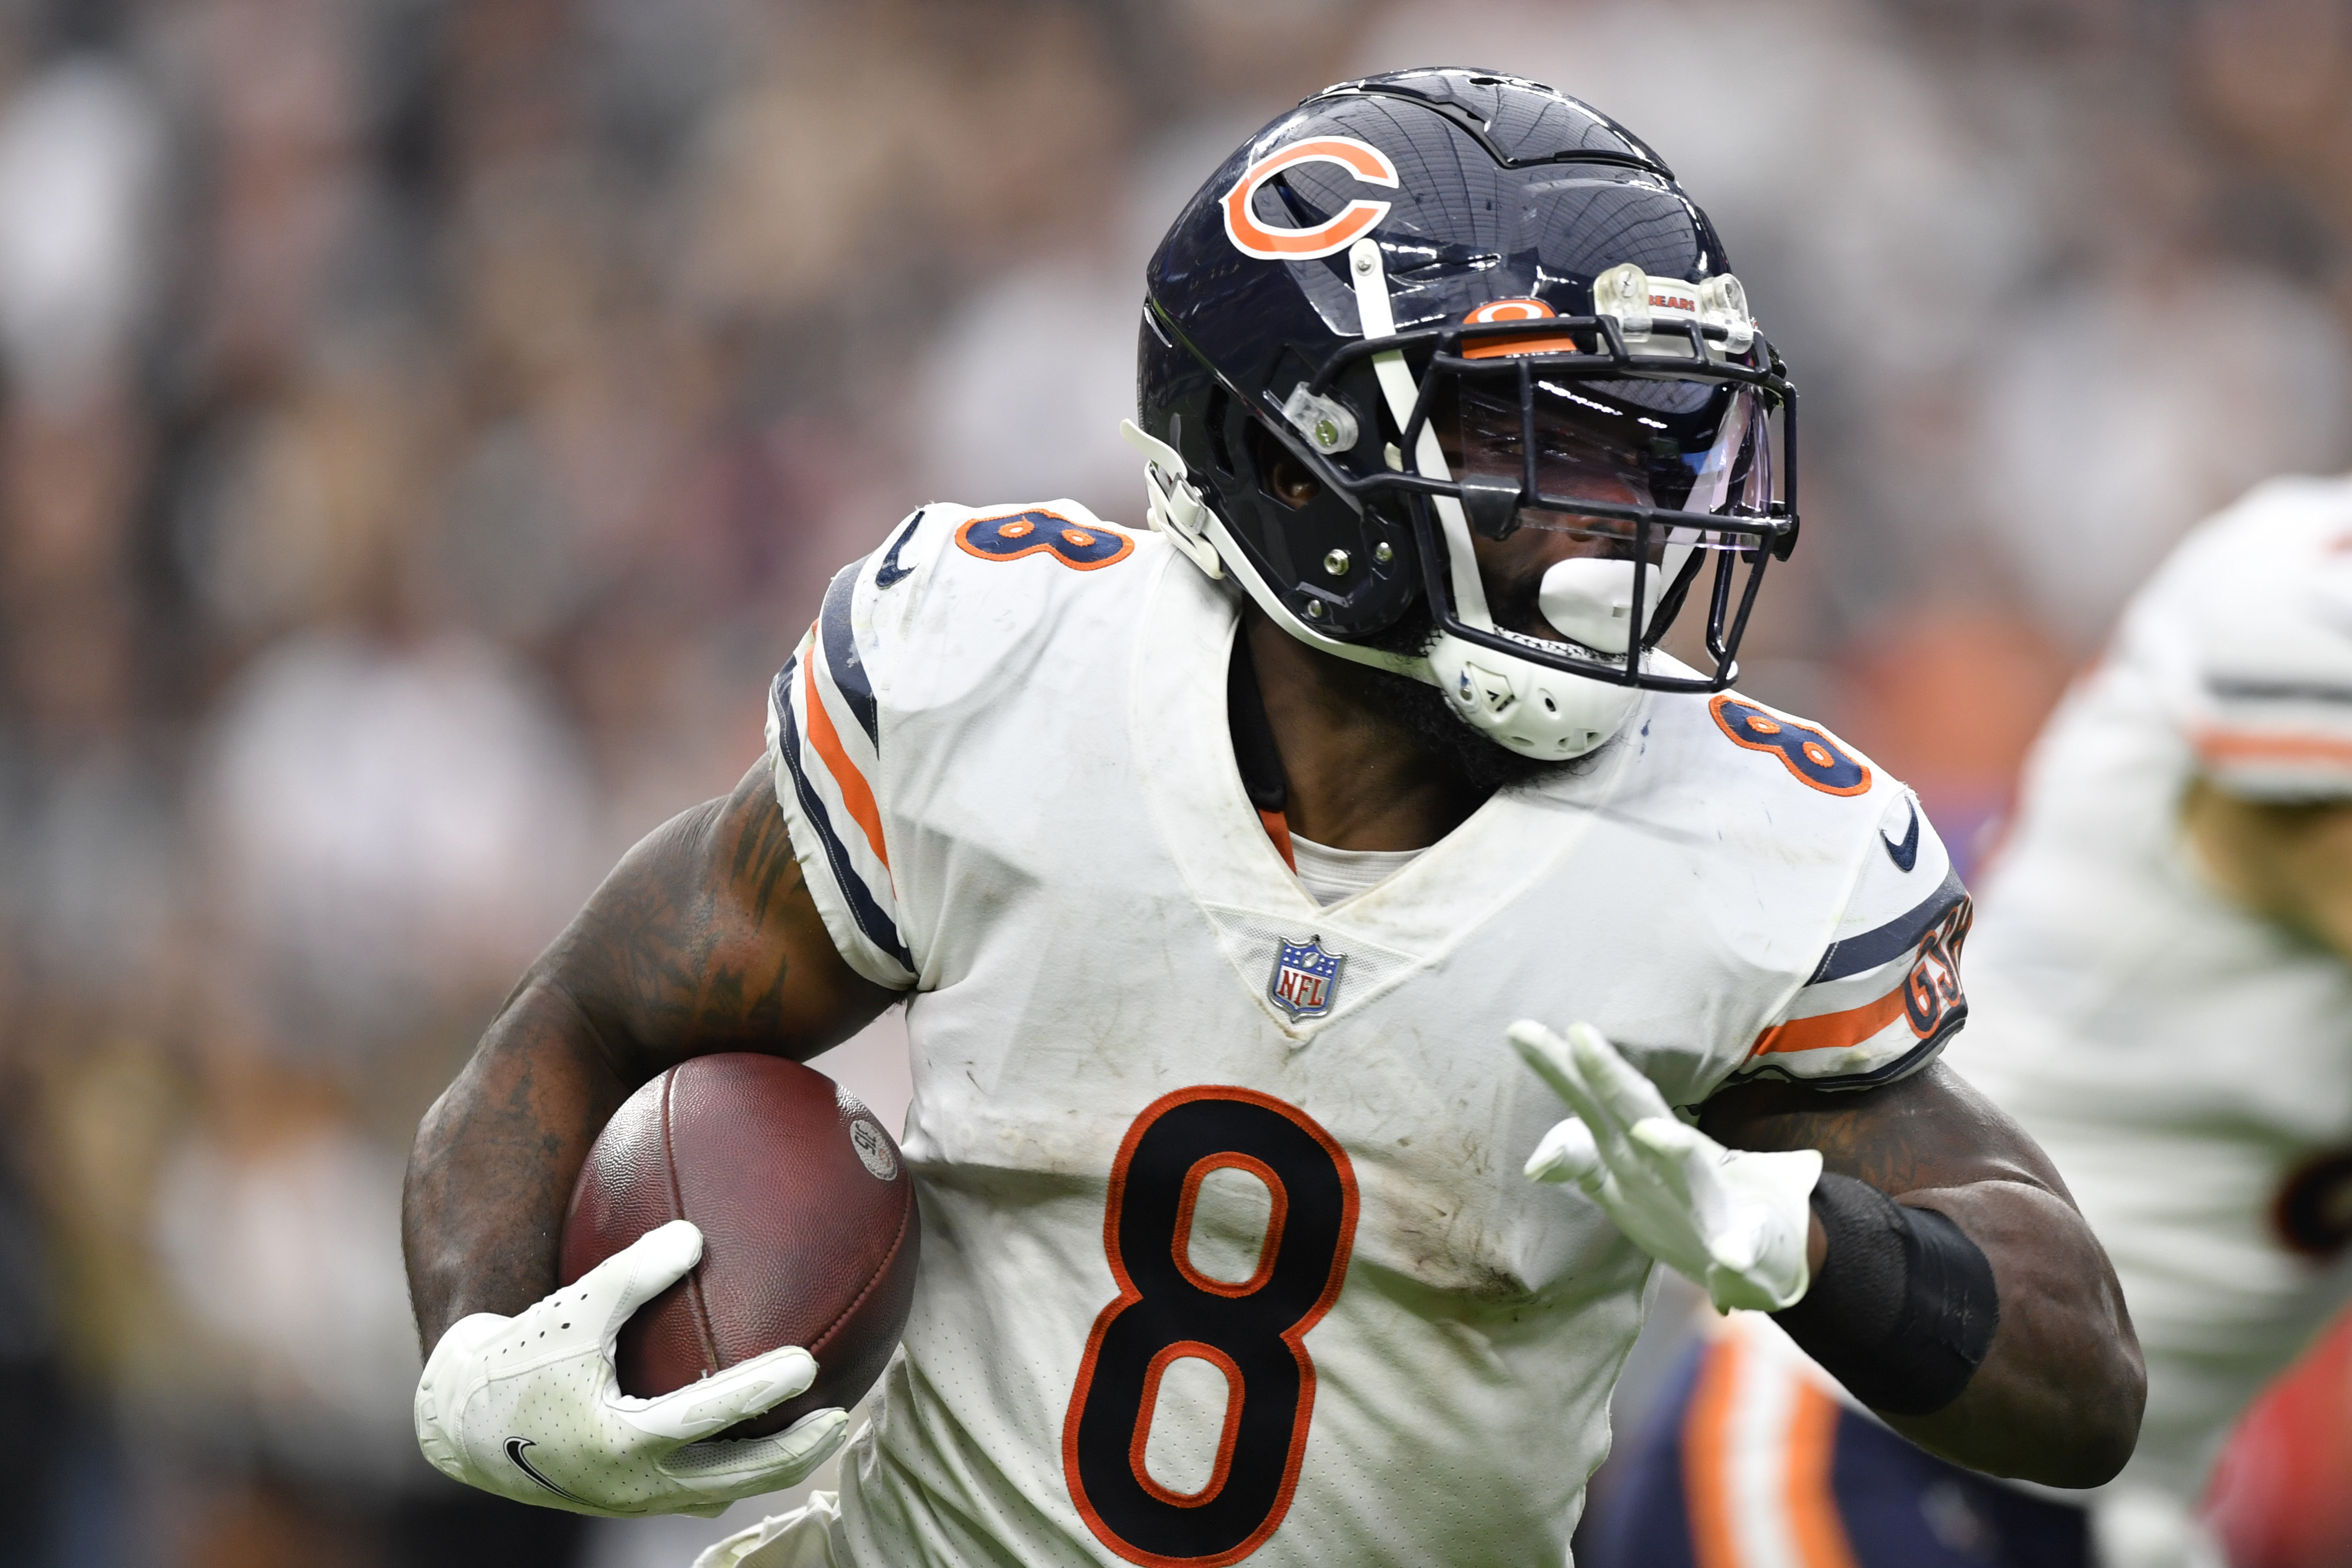 Damien Williams ran 16 times for 64 yards and a touchdown in the Bears' win over the Raiders.